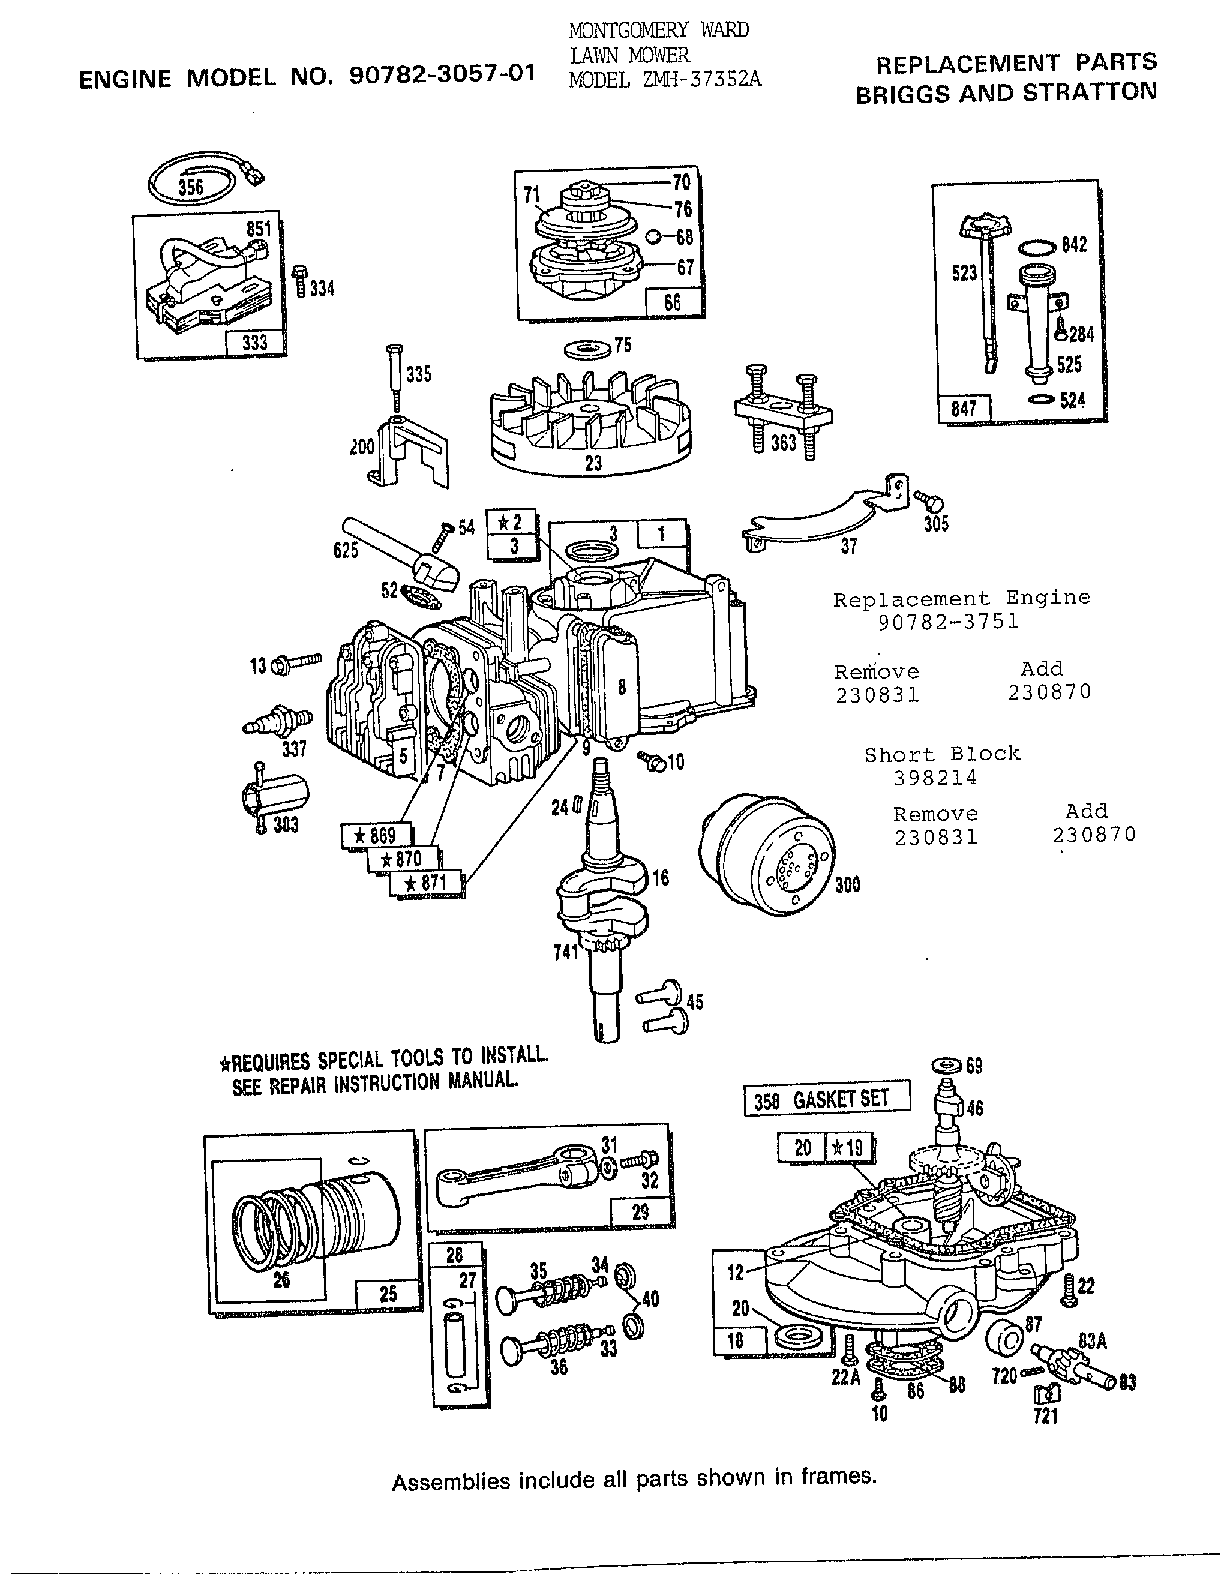 ENGINE-BRIGGS Diagram & Parts List for Model 37352a Murray